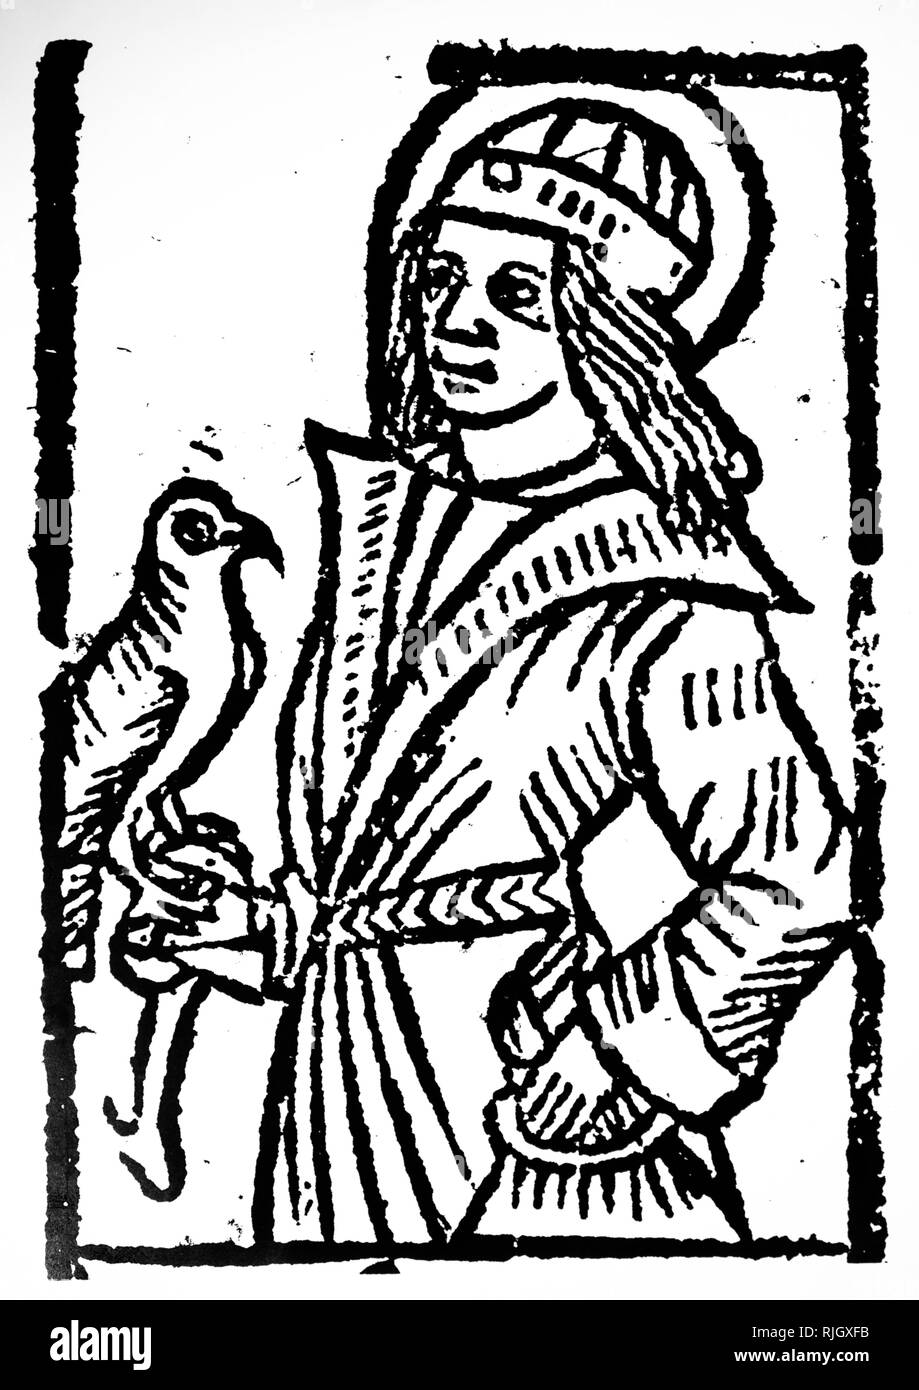 A woodcut engraving depicting a falconer: from an early 16th-century edition of the Shepherds Kalendar. Dated 18th century - Stock Image